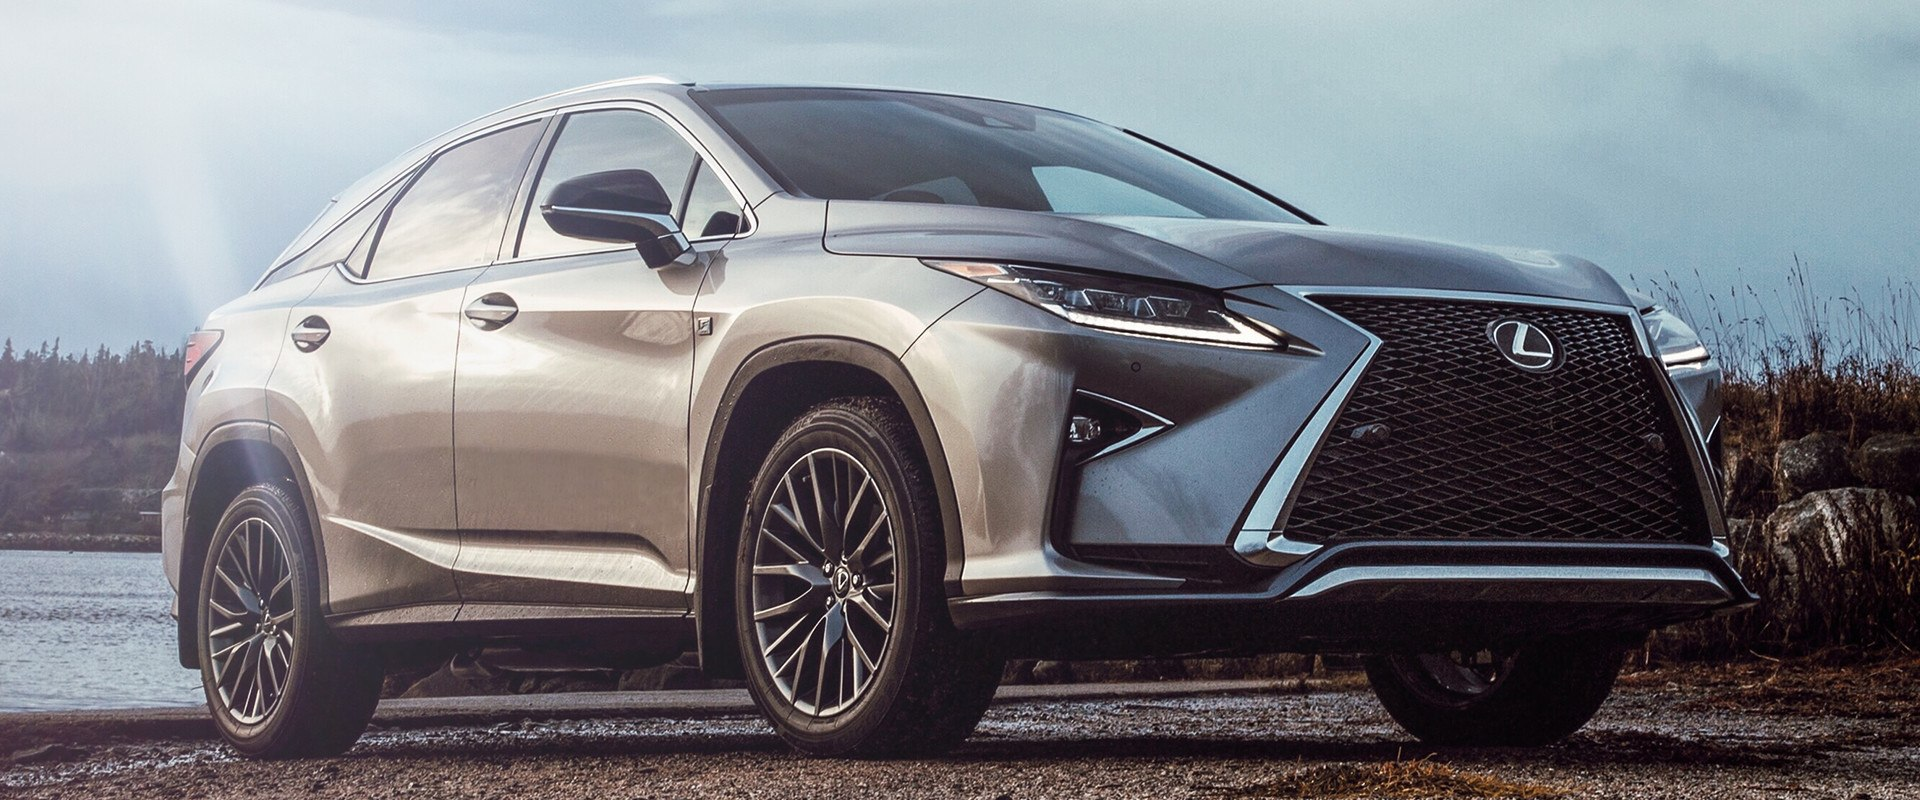 2019 Lexus RX at Ken Shaw Lexus in the Greater Toronto Area GTA, Ontario, Canada